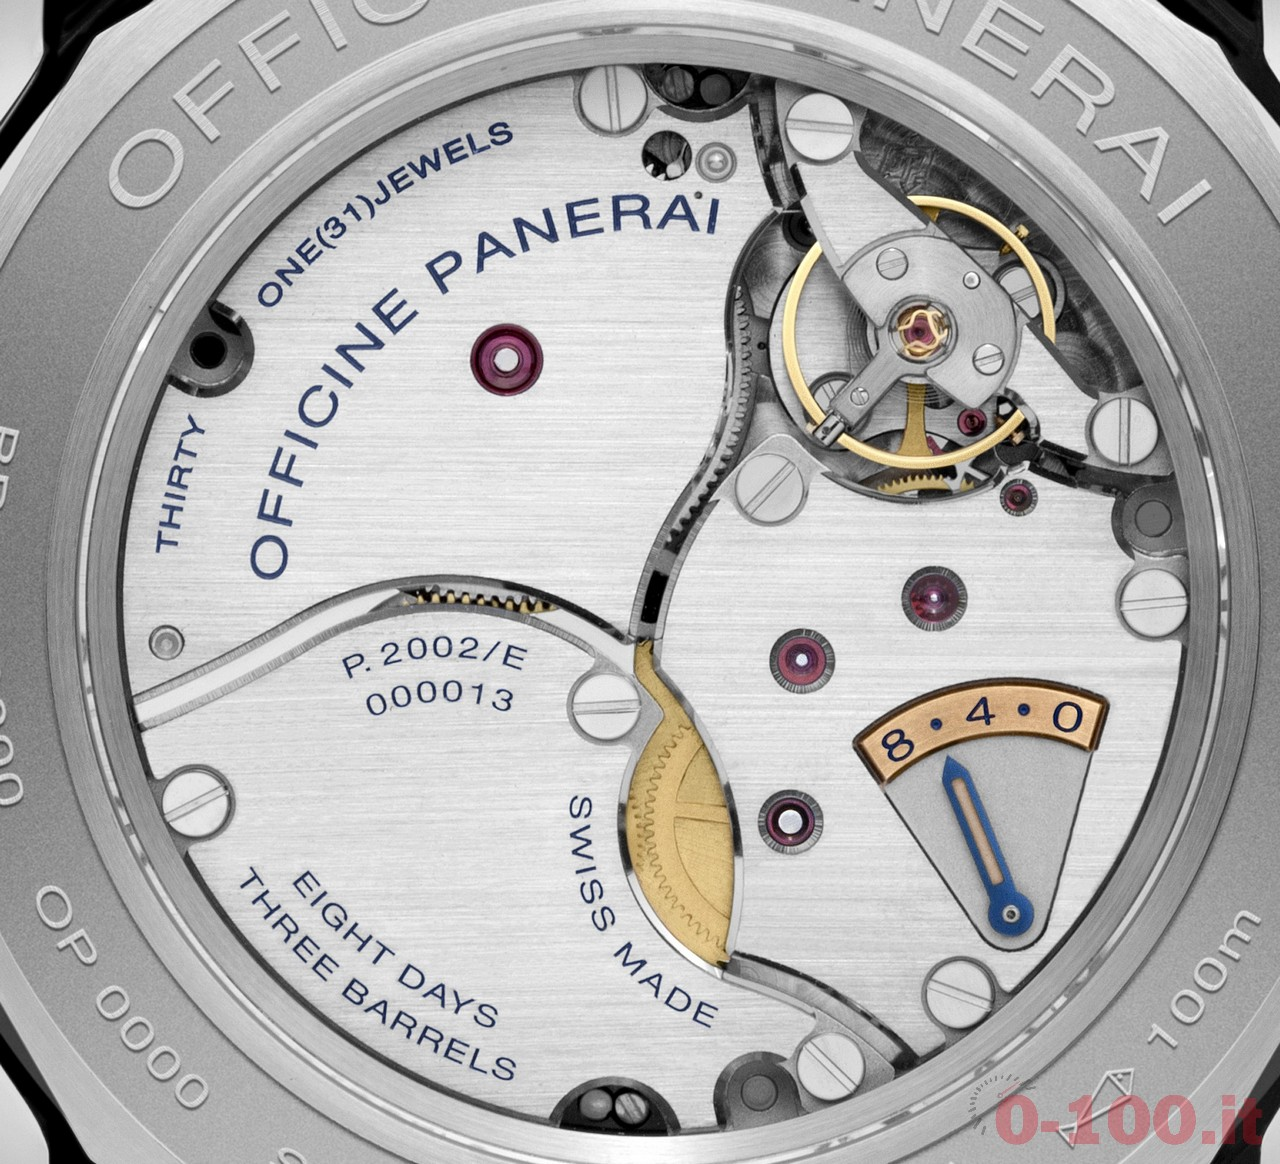 officine-panerai-luminor-1950-equation-of-time-8-days-ref-pam00601-limited-edition_0-100_8